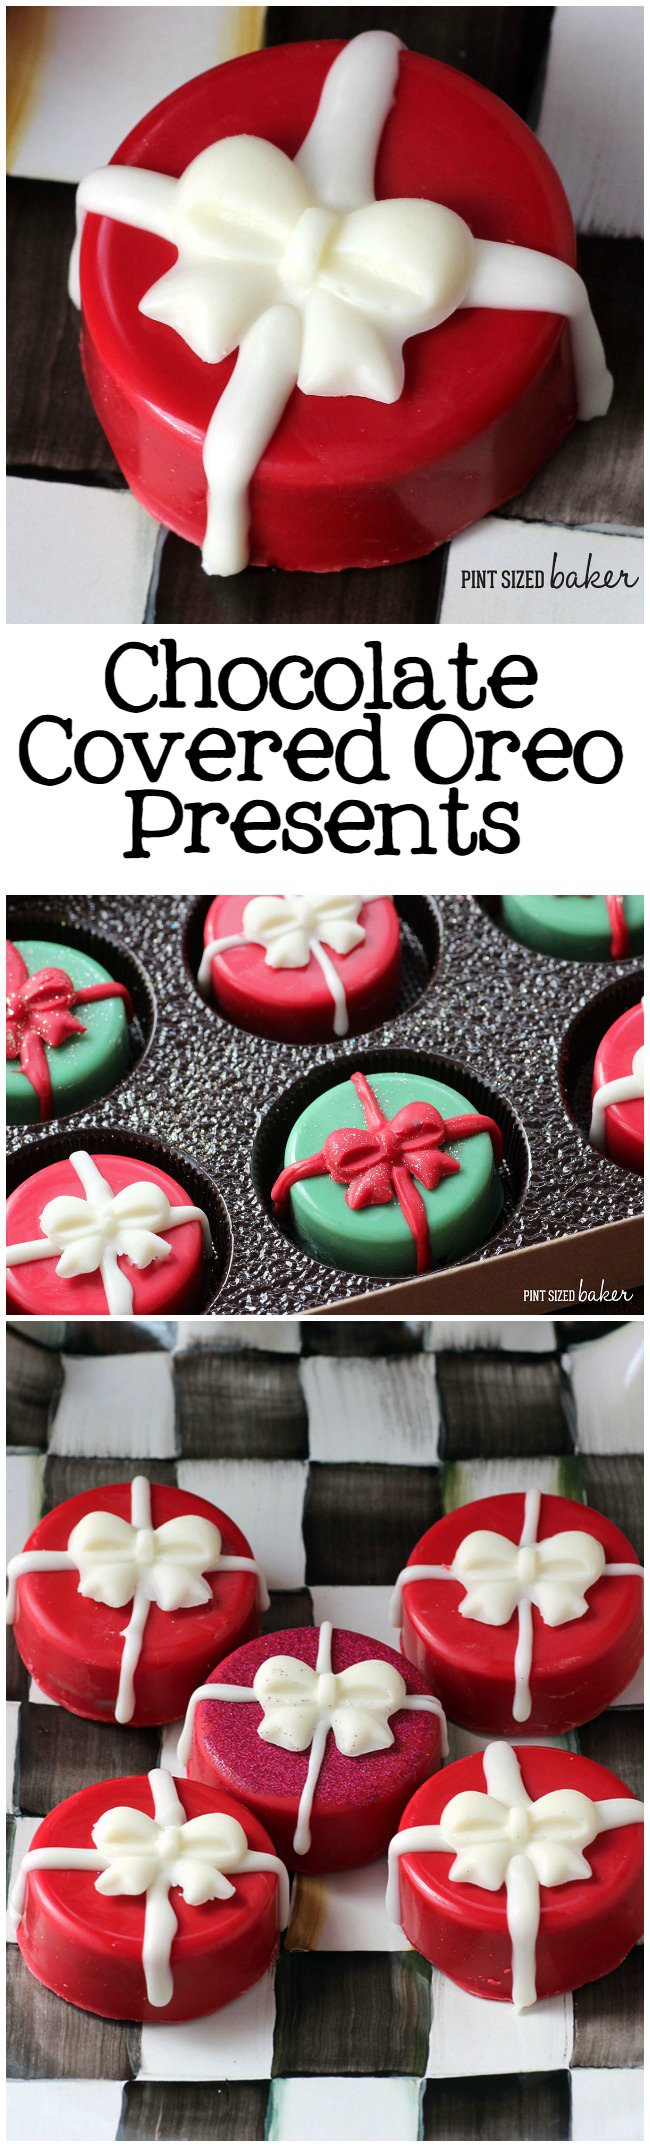 "Cute and perfect for gift giving - these chocolate covered Oreo ""presents"" are easy to make."